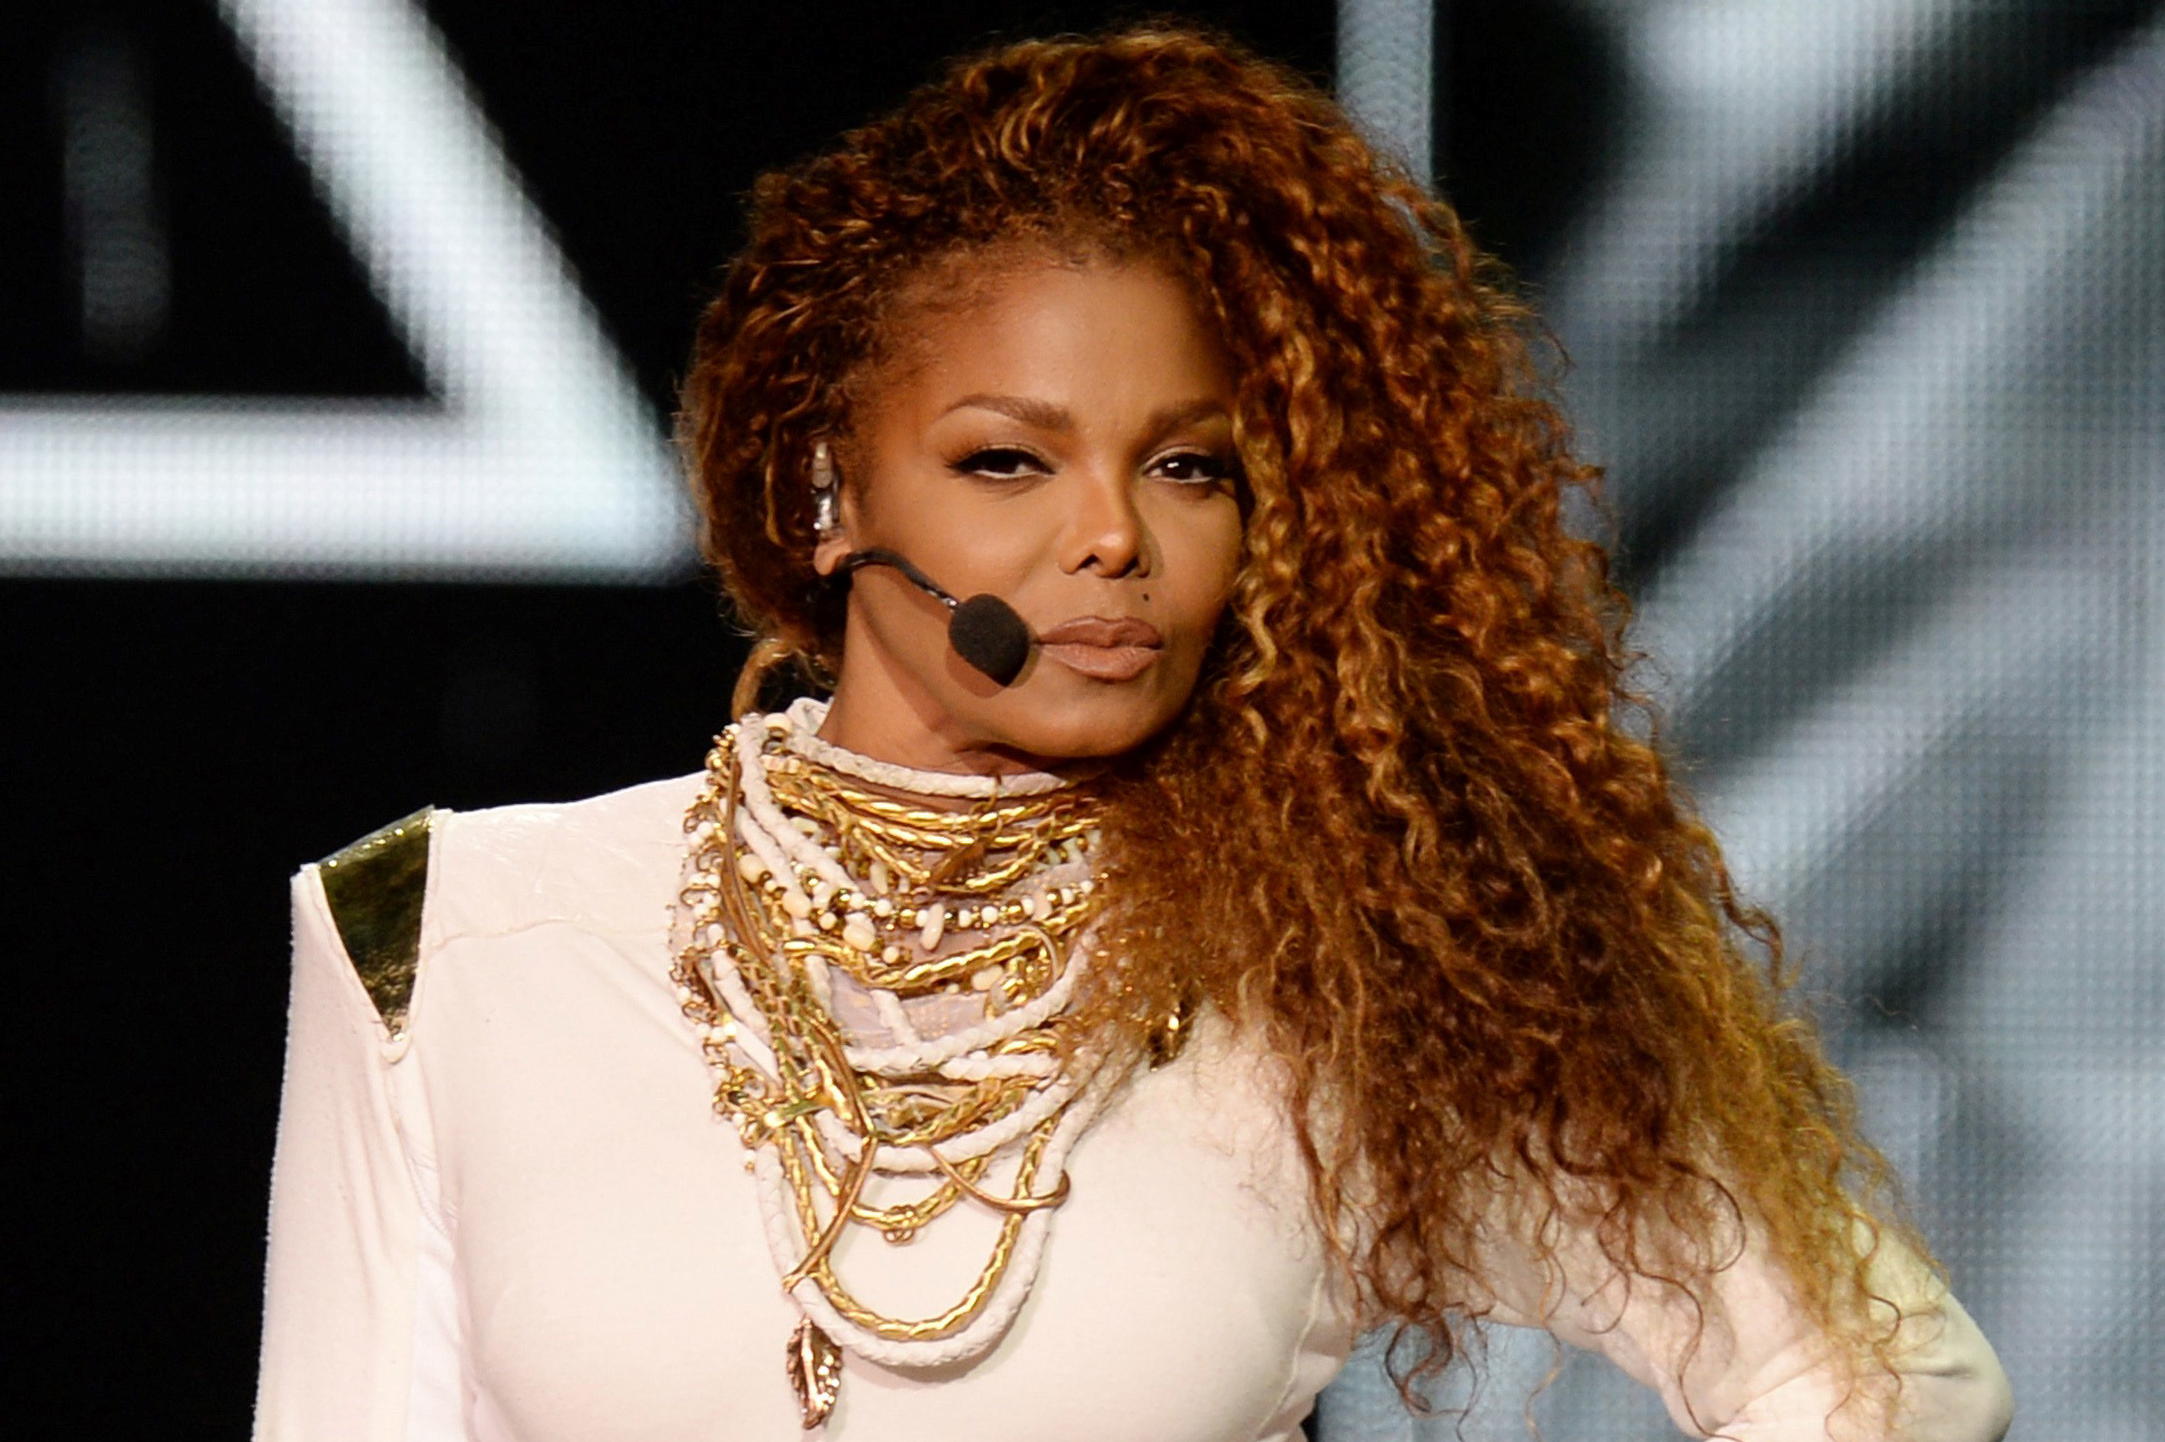 Janet Jackson in Miami during Unbreakable Tour